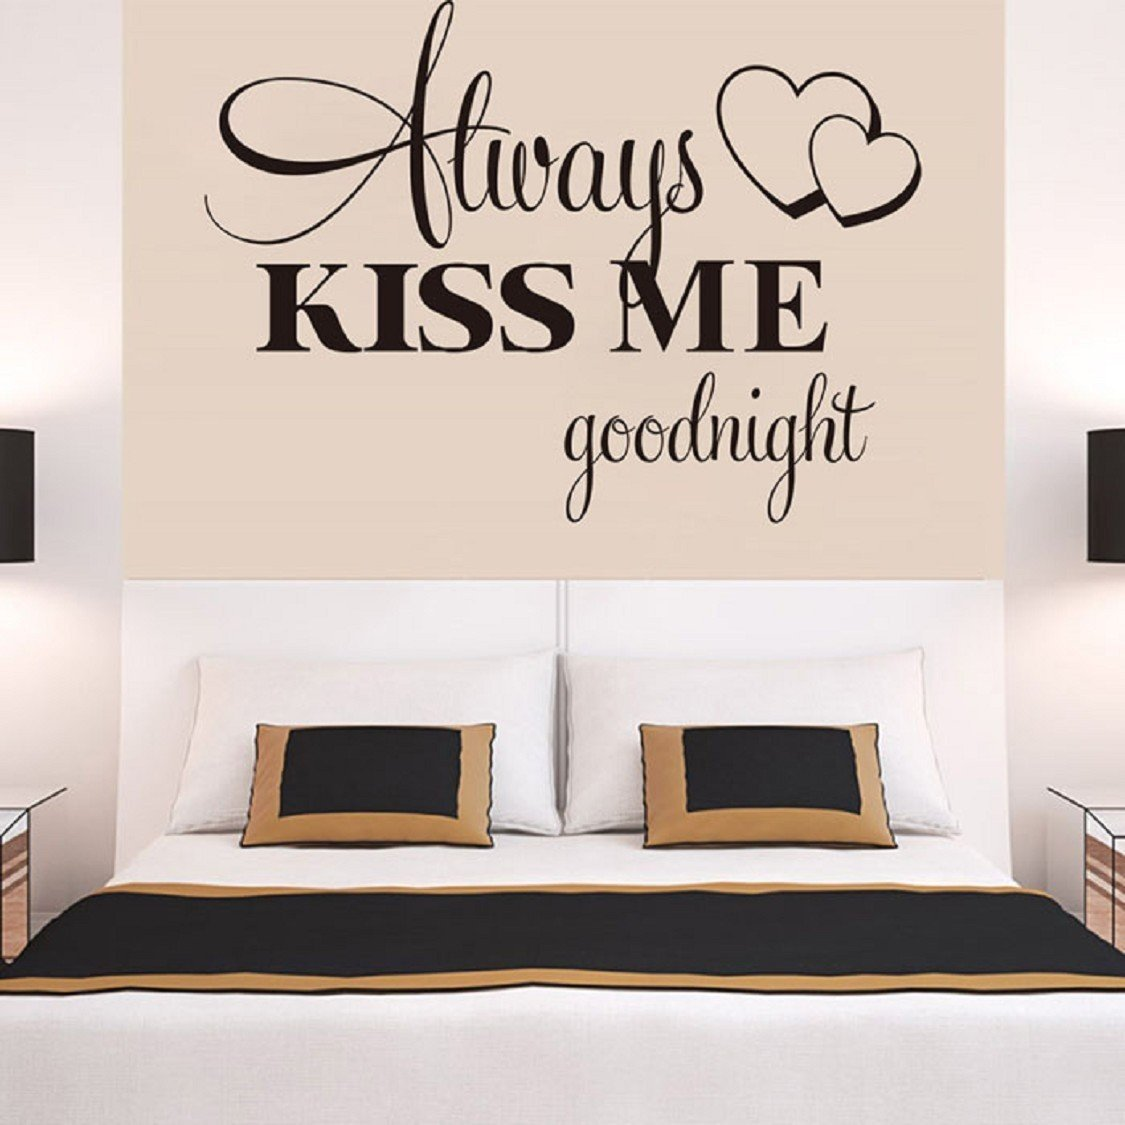 Wall Stickers, Ikevan Always Kiss Me Goodnight Wall Sticker PVC Decal Home Bedroom Living Room TV Setting Wall Sticker Romance Home Decoration 57x42cm